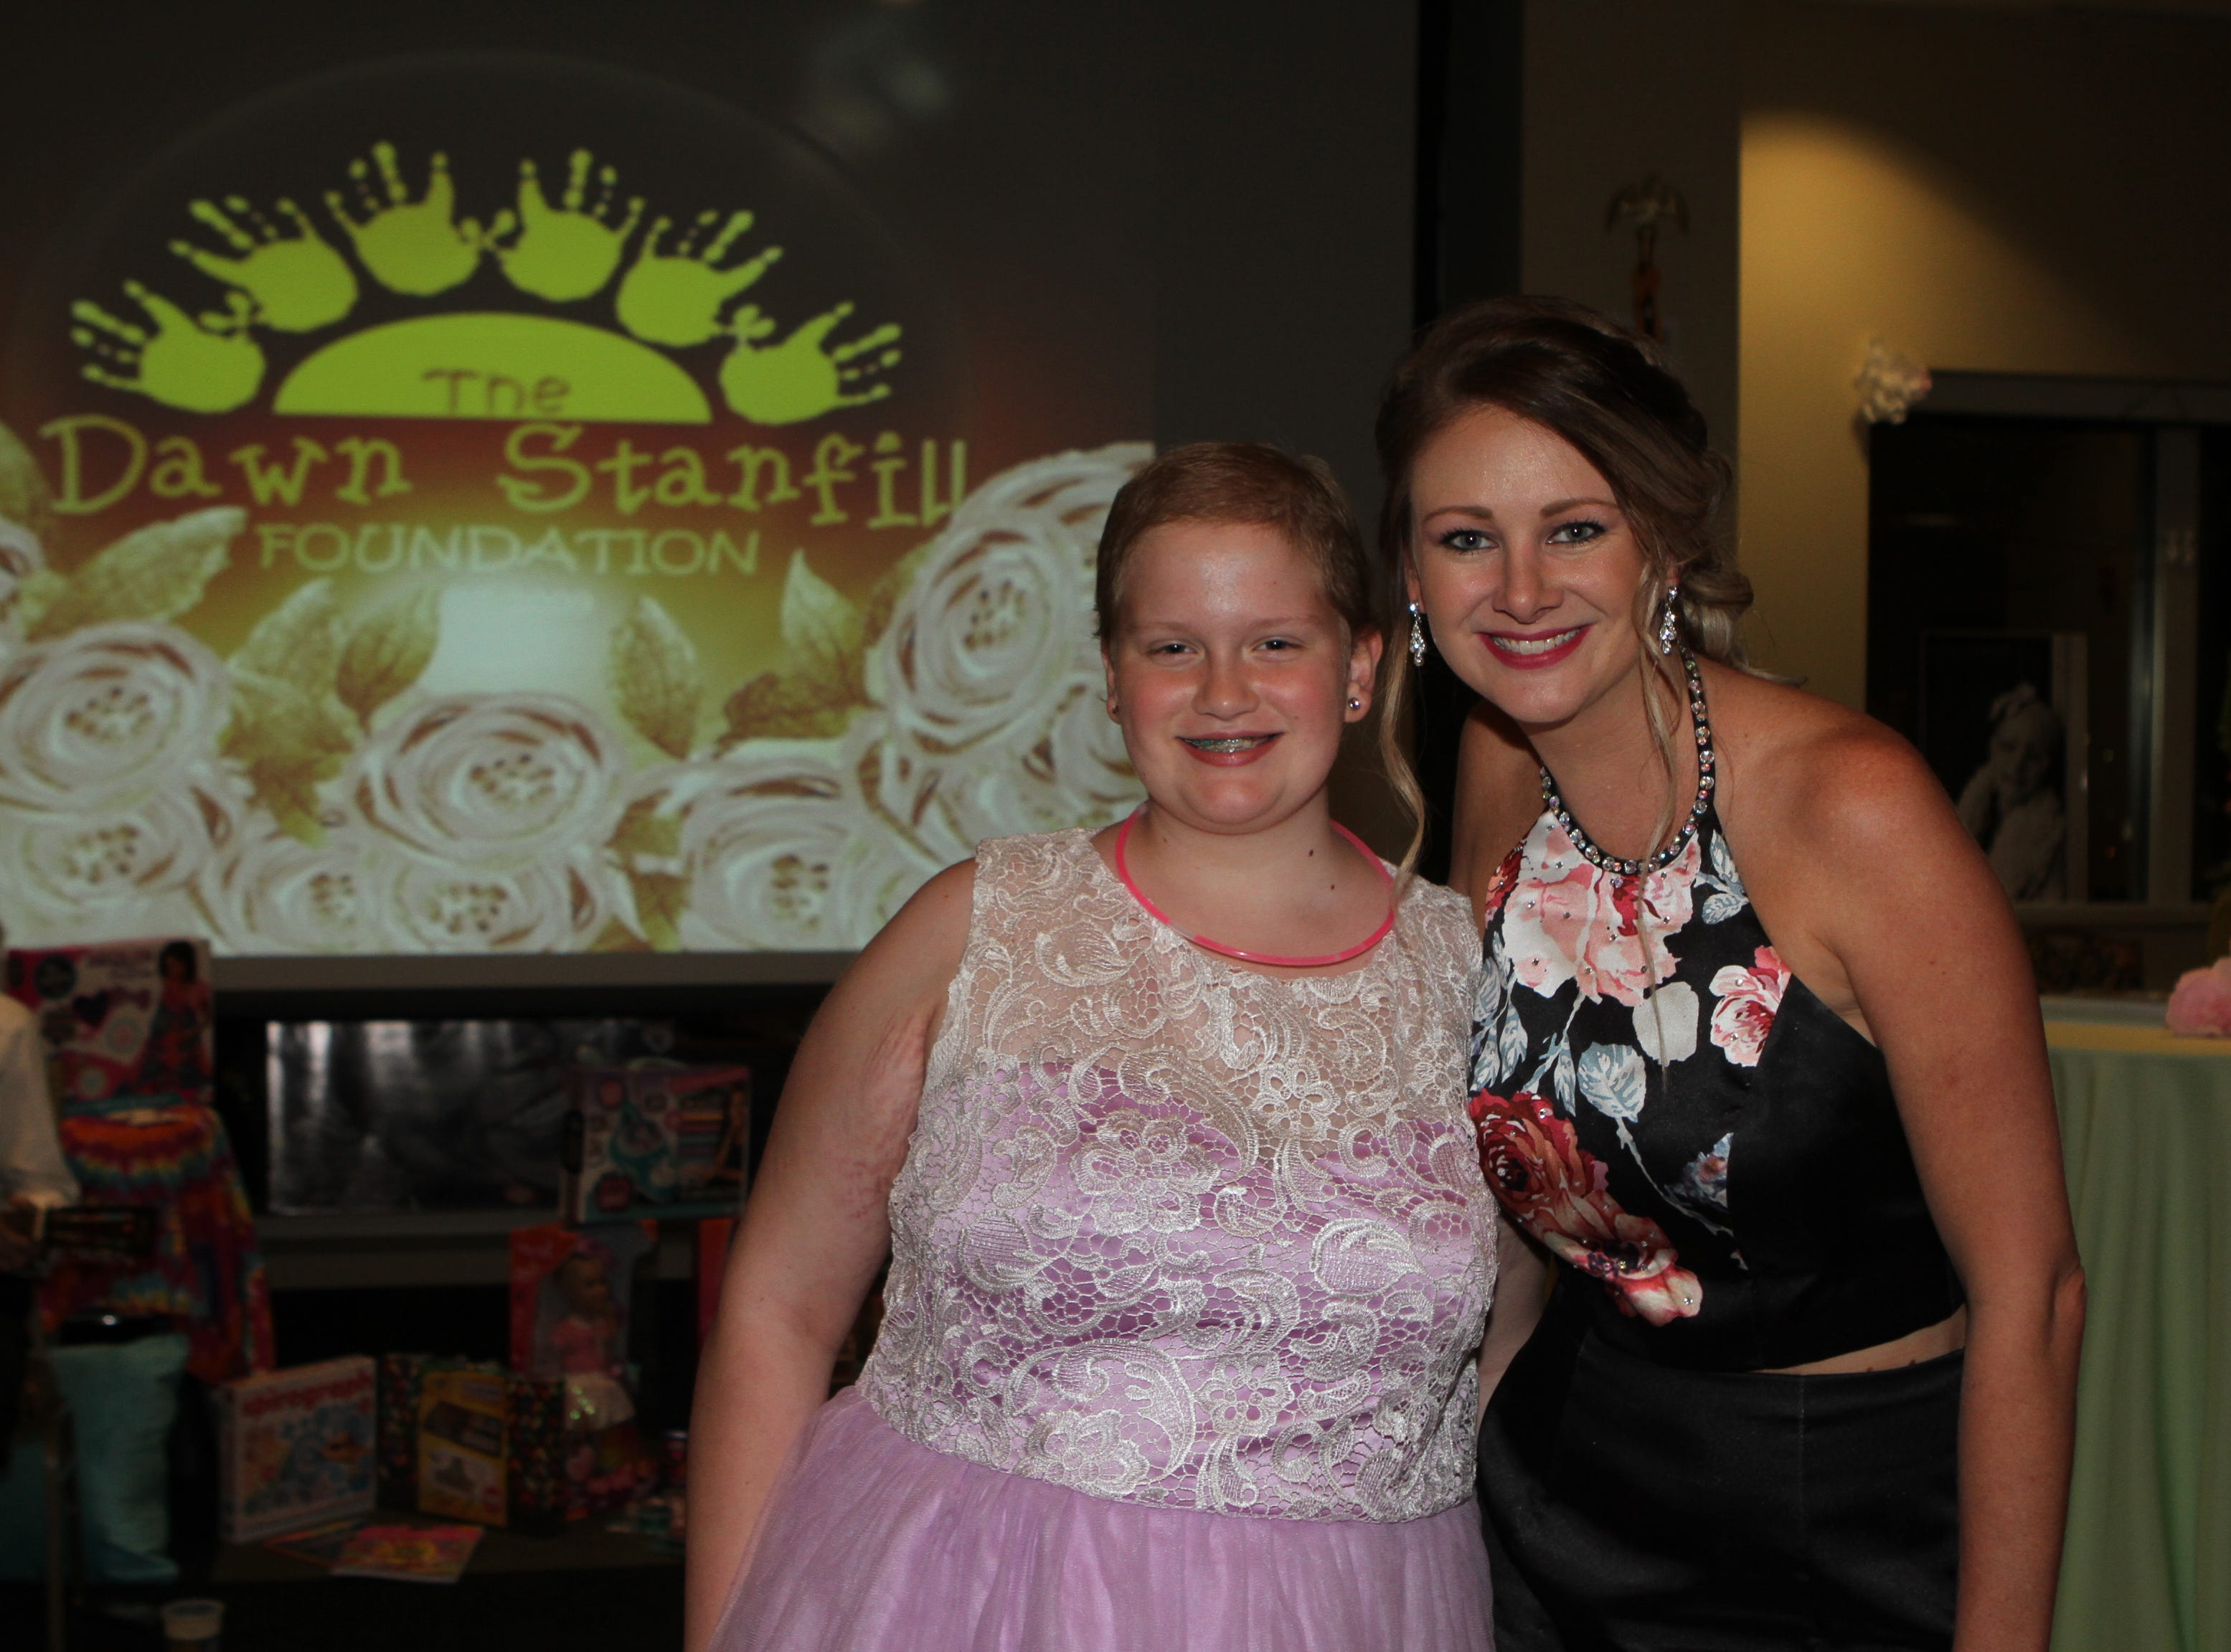 Jessika Winfield and Brittnye Stanfill at the Dawn Stanfill Foundation 10th Annual Dancing Til Dawn to benefit Middle Tennessee children battling pediatric cancer on Saturday, Sept. 29, 2018.